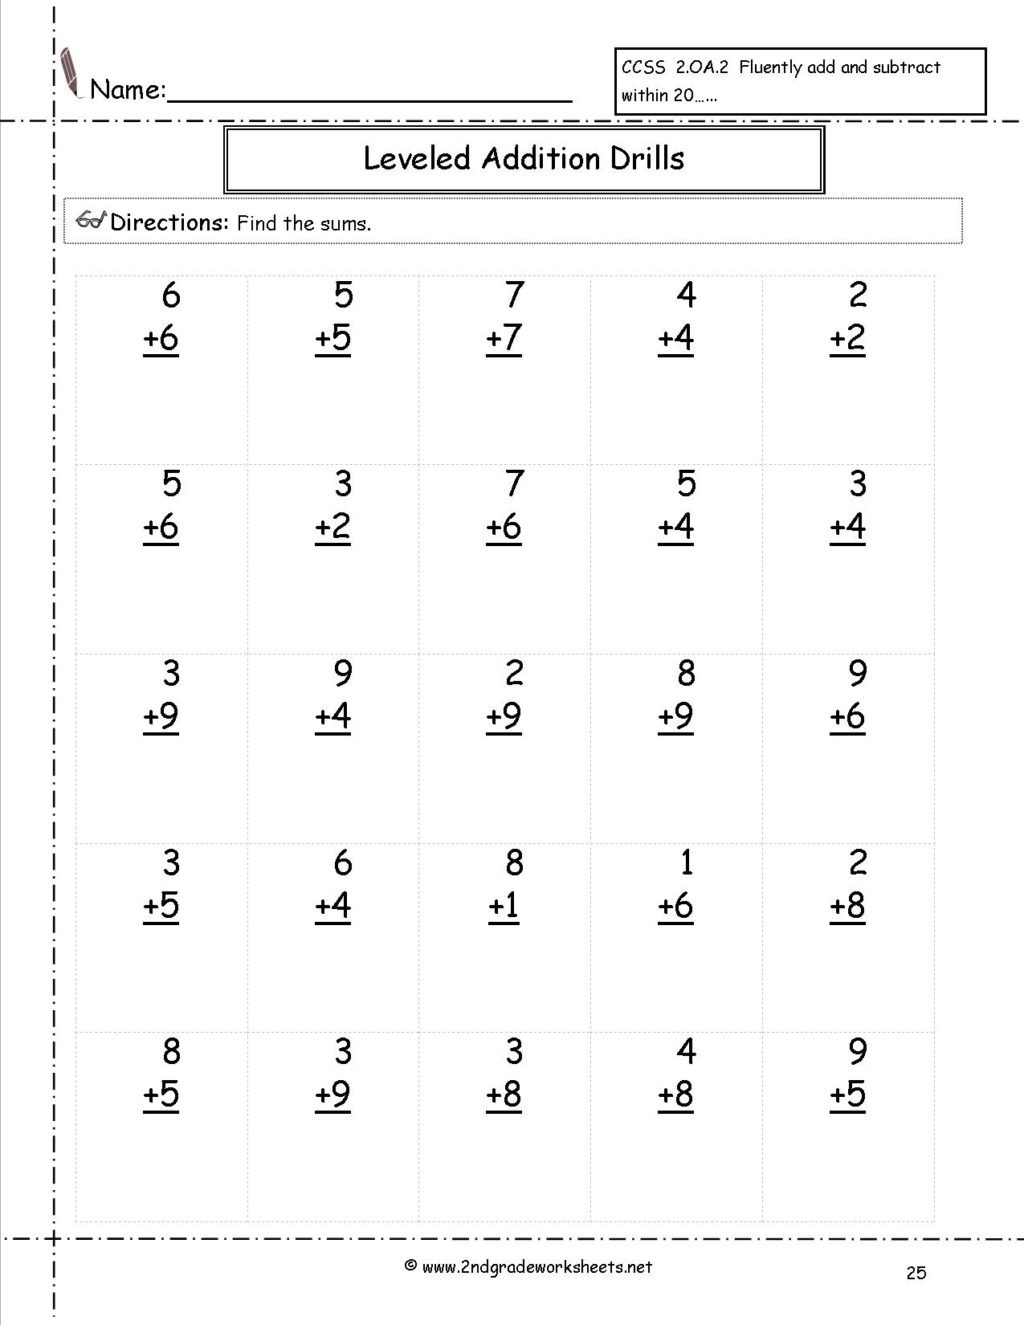 2nd Grade Minute Math Worksheets Worksheet Minute Math Worksheets 2nd Grade Image